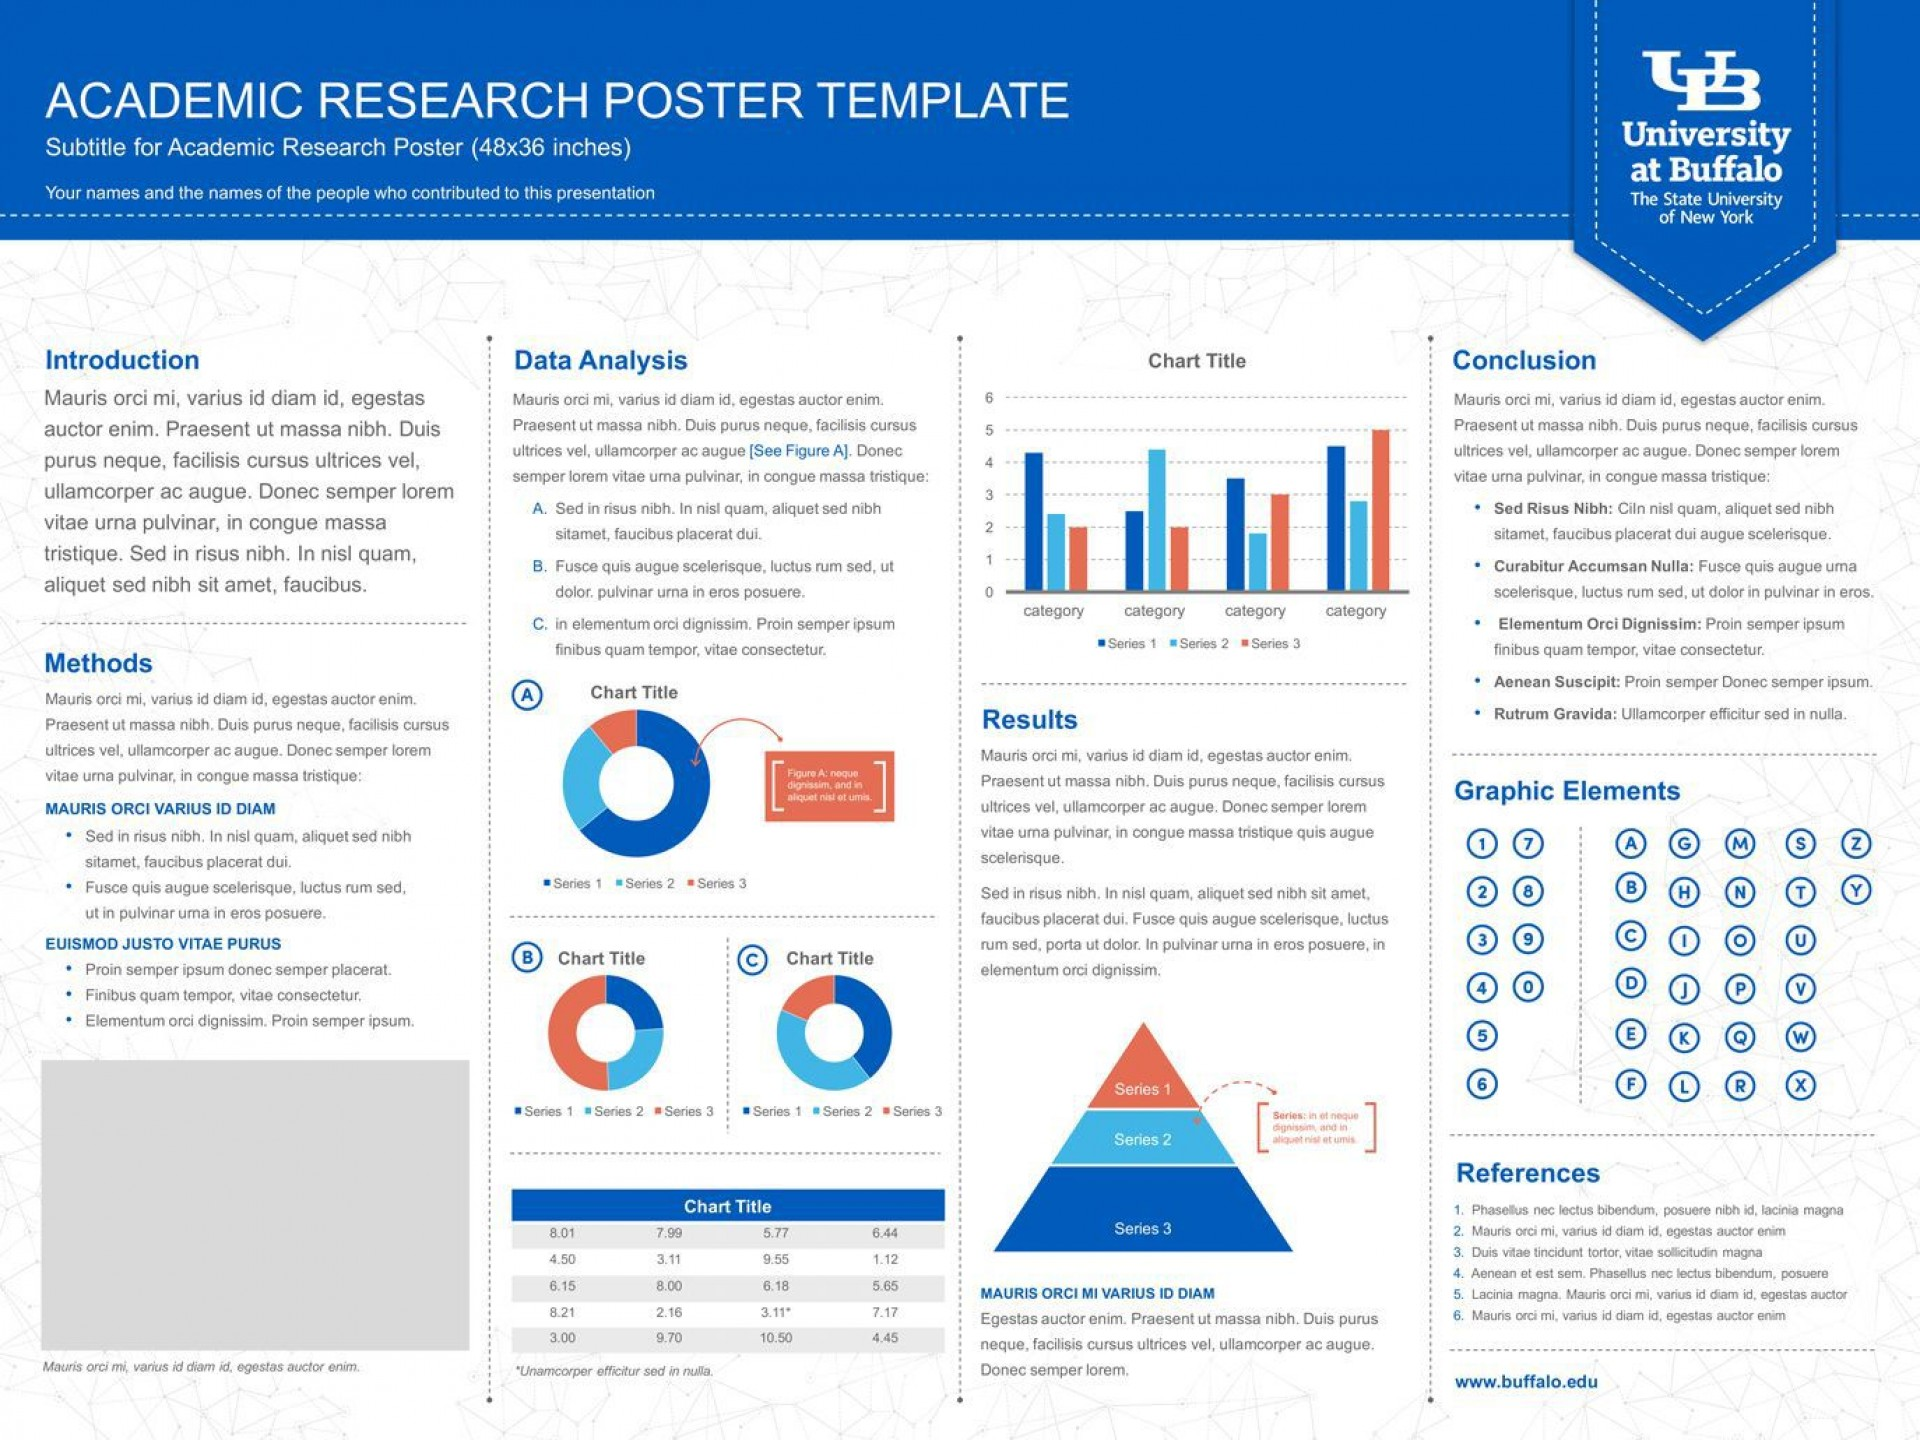 000 Dreaded Research Poster Template Powerpoint High Definition  Scientific Ppt1920